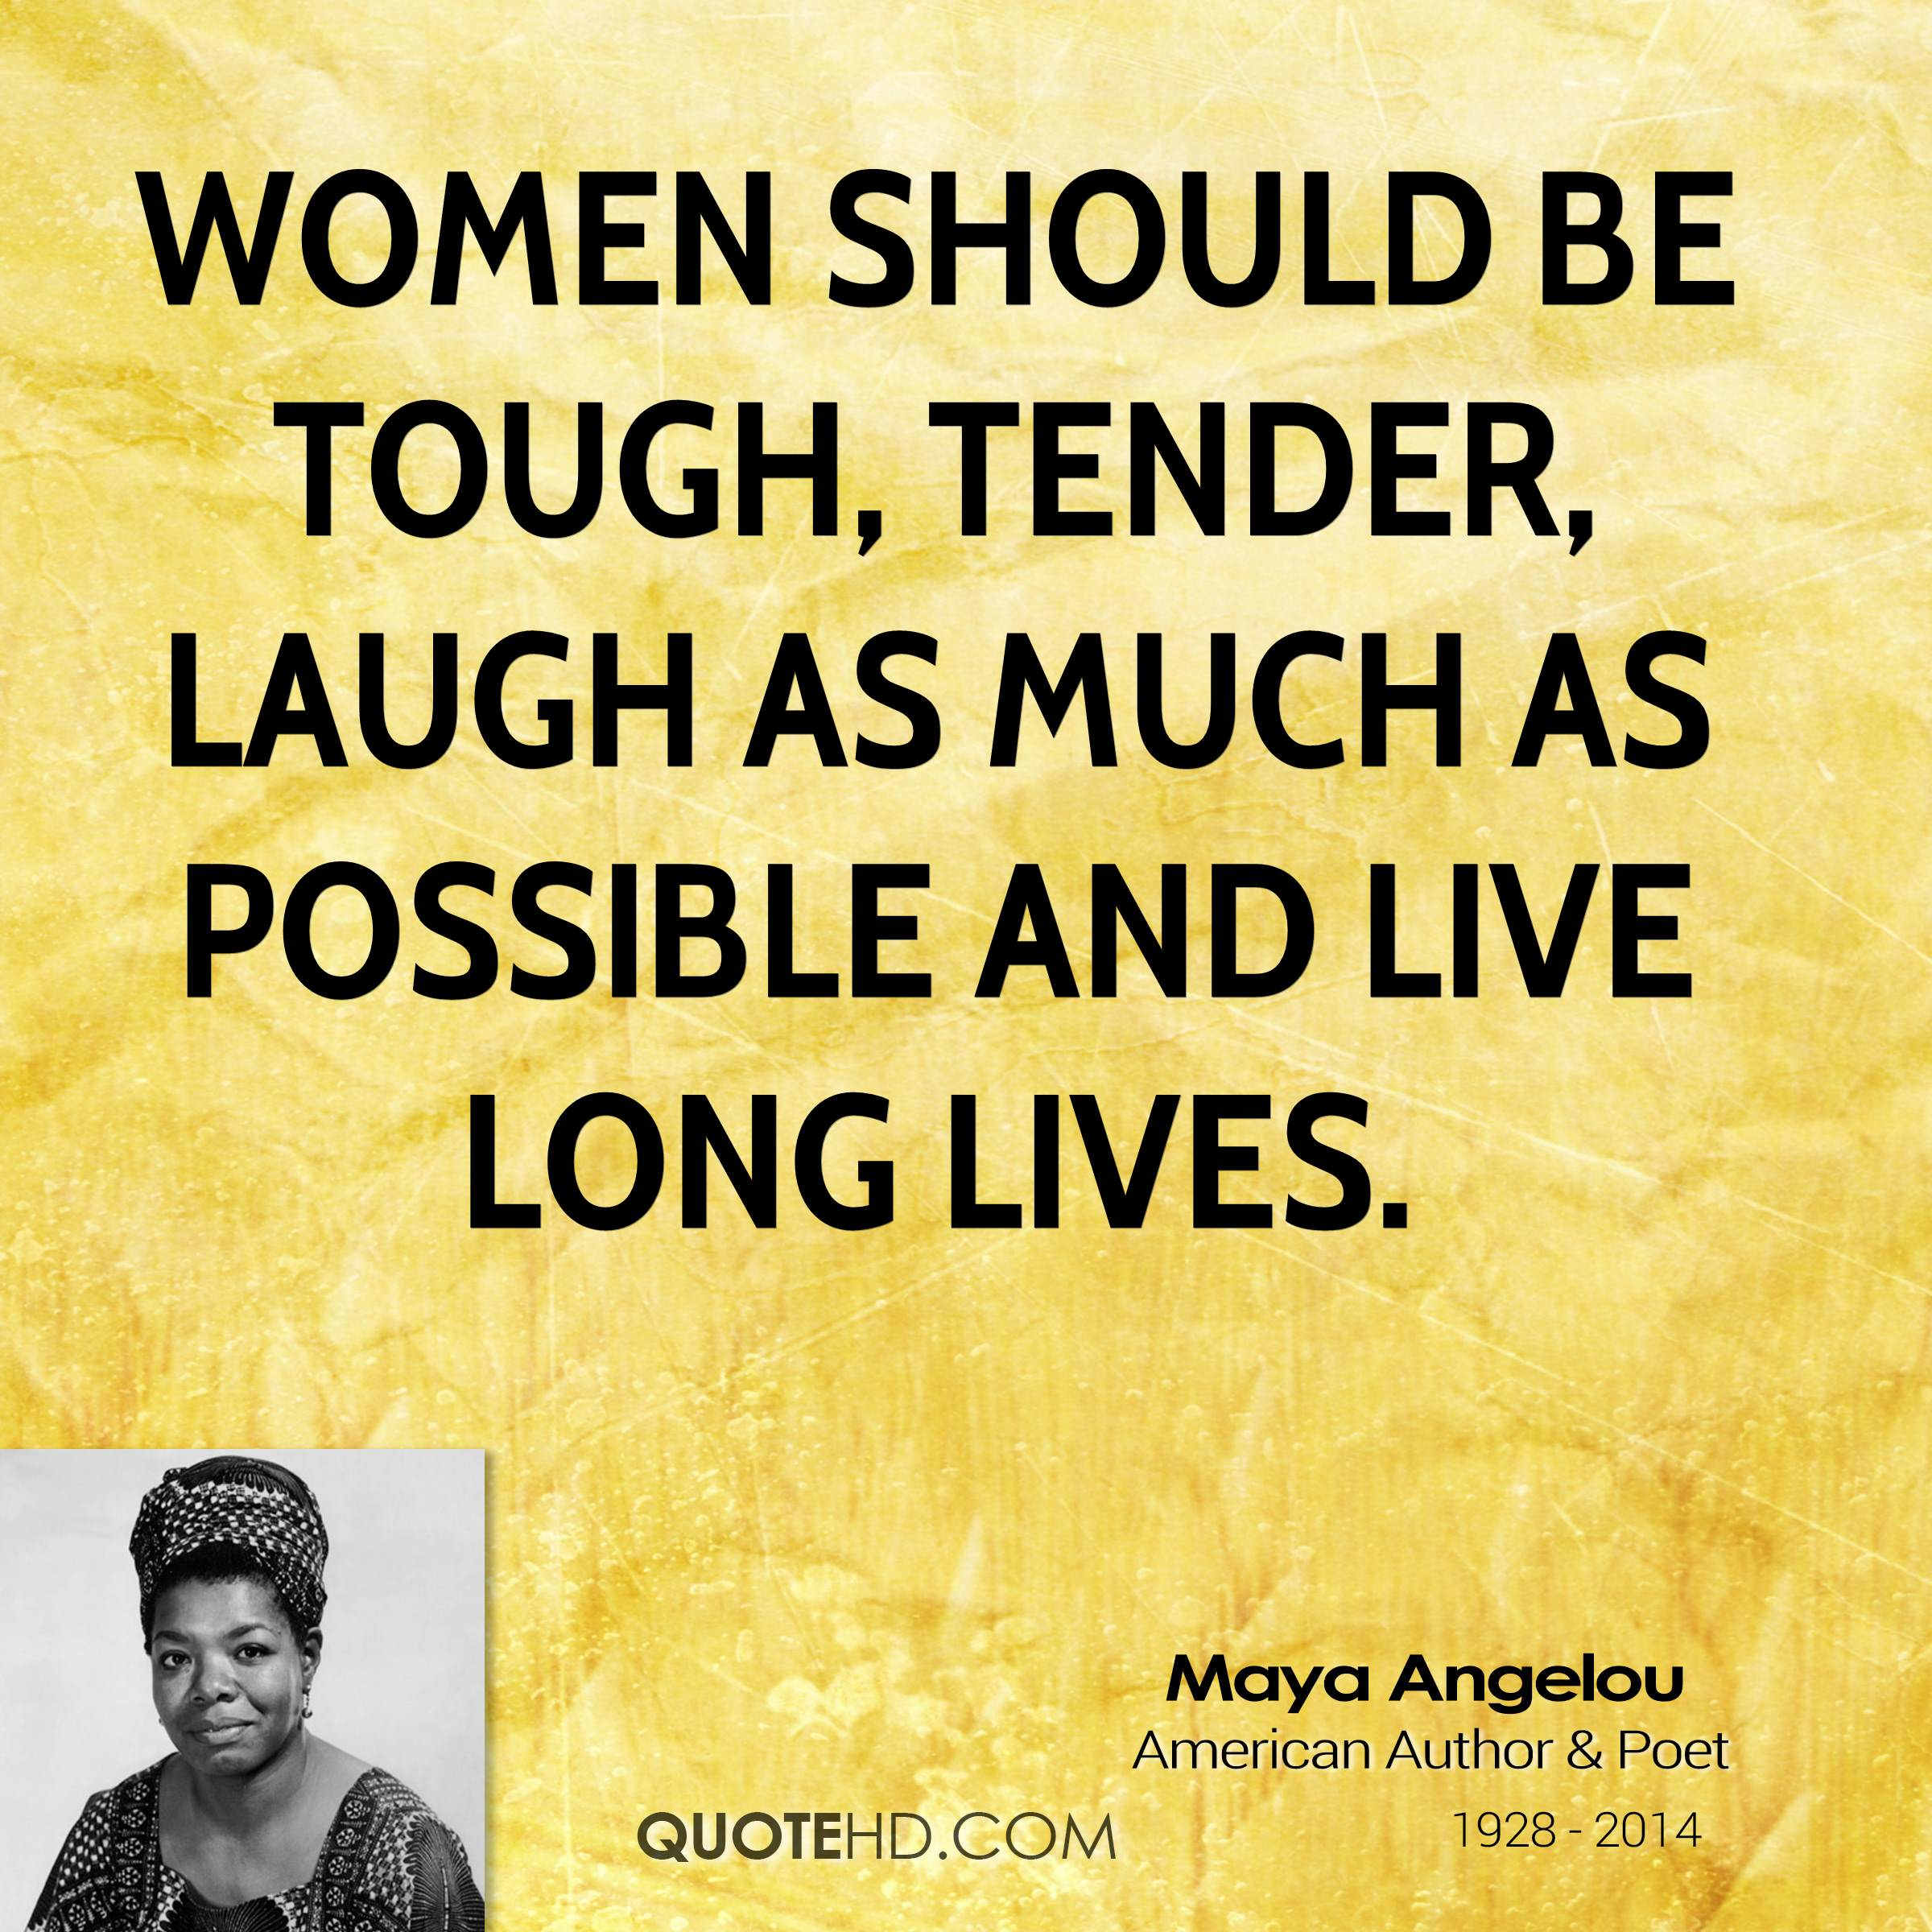 Quotes About Women: Maya Angelou Quotes About Women. QuotesGram